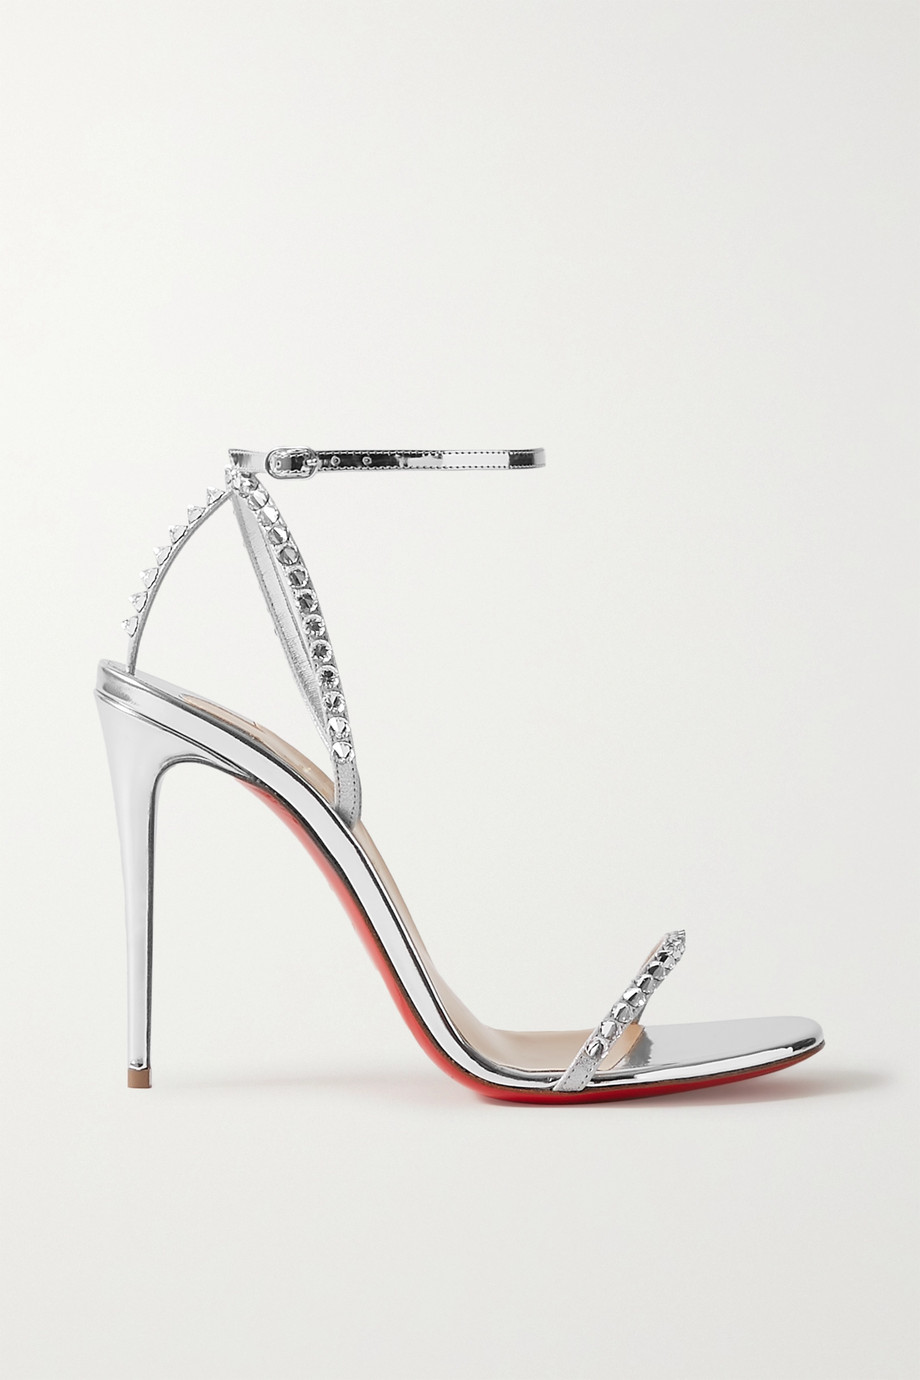 Christian Louboutin So You 100 Swarovski crystal-embellished mirrored-leather sandals